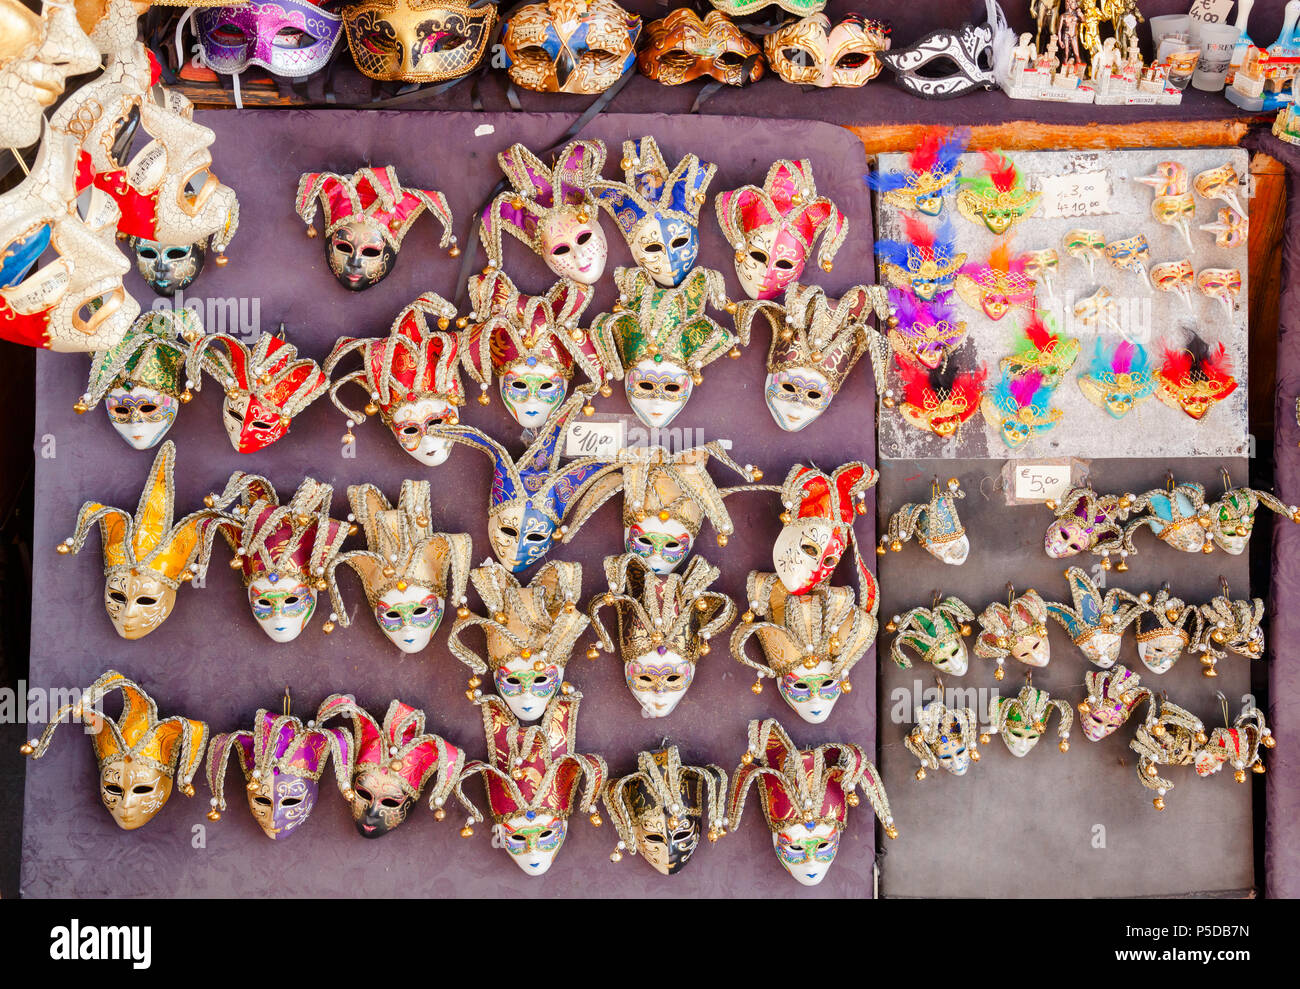 FLORENCE, ITALY - JUN 1, 2018: Street stall with traditional italian souvenirs - Venetian carnival masks for sale - Stock Image